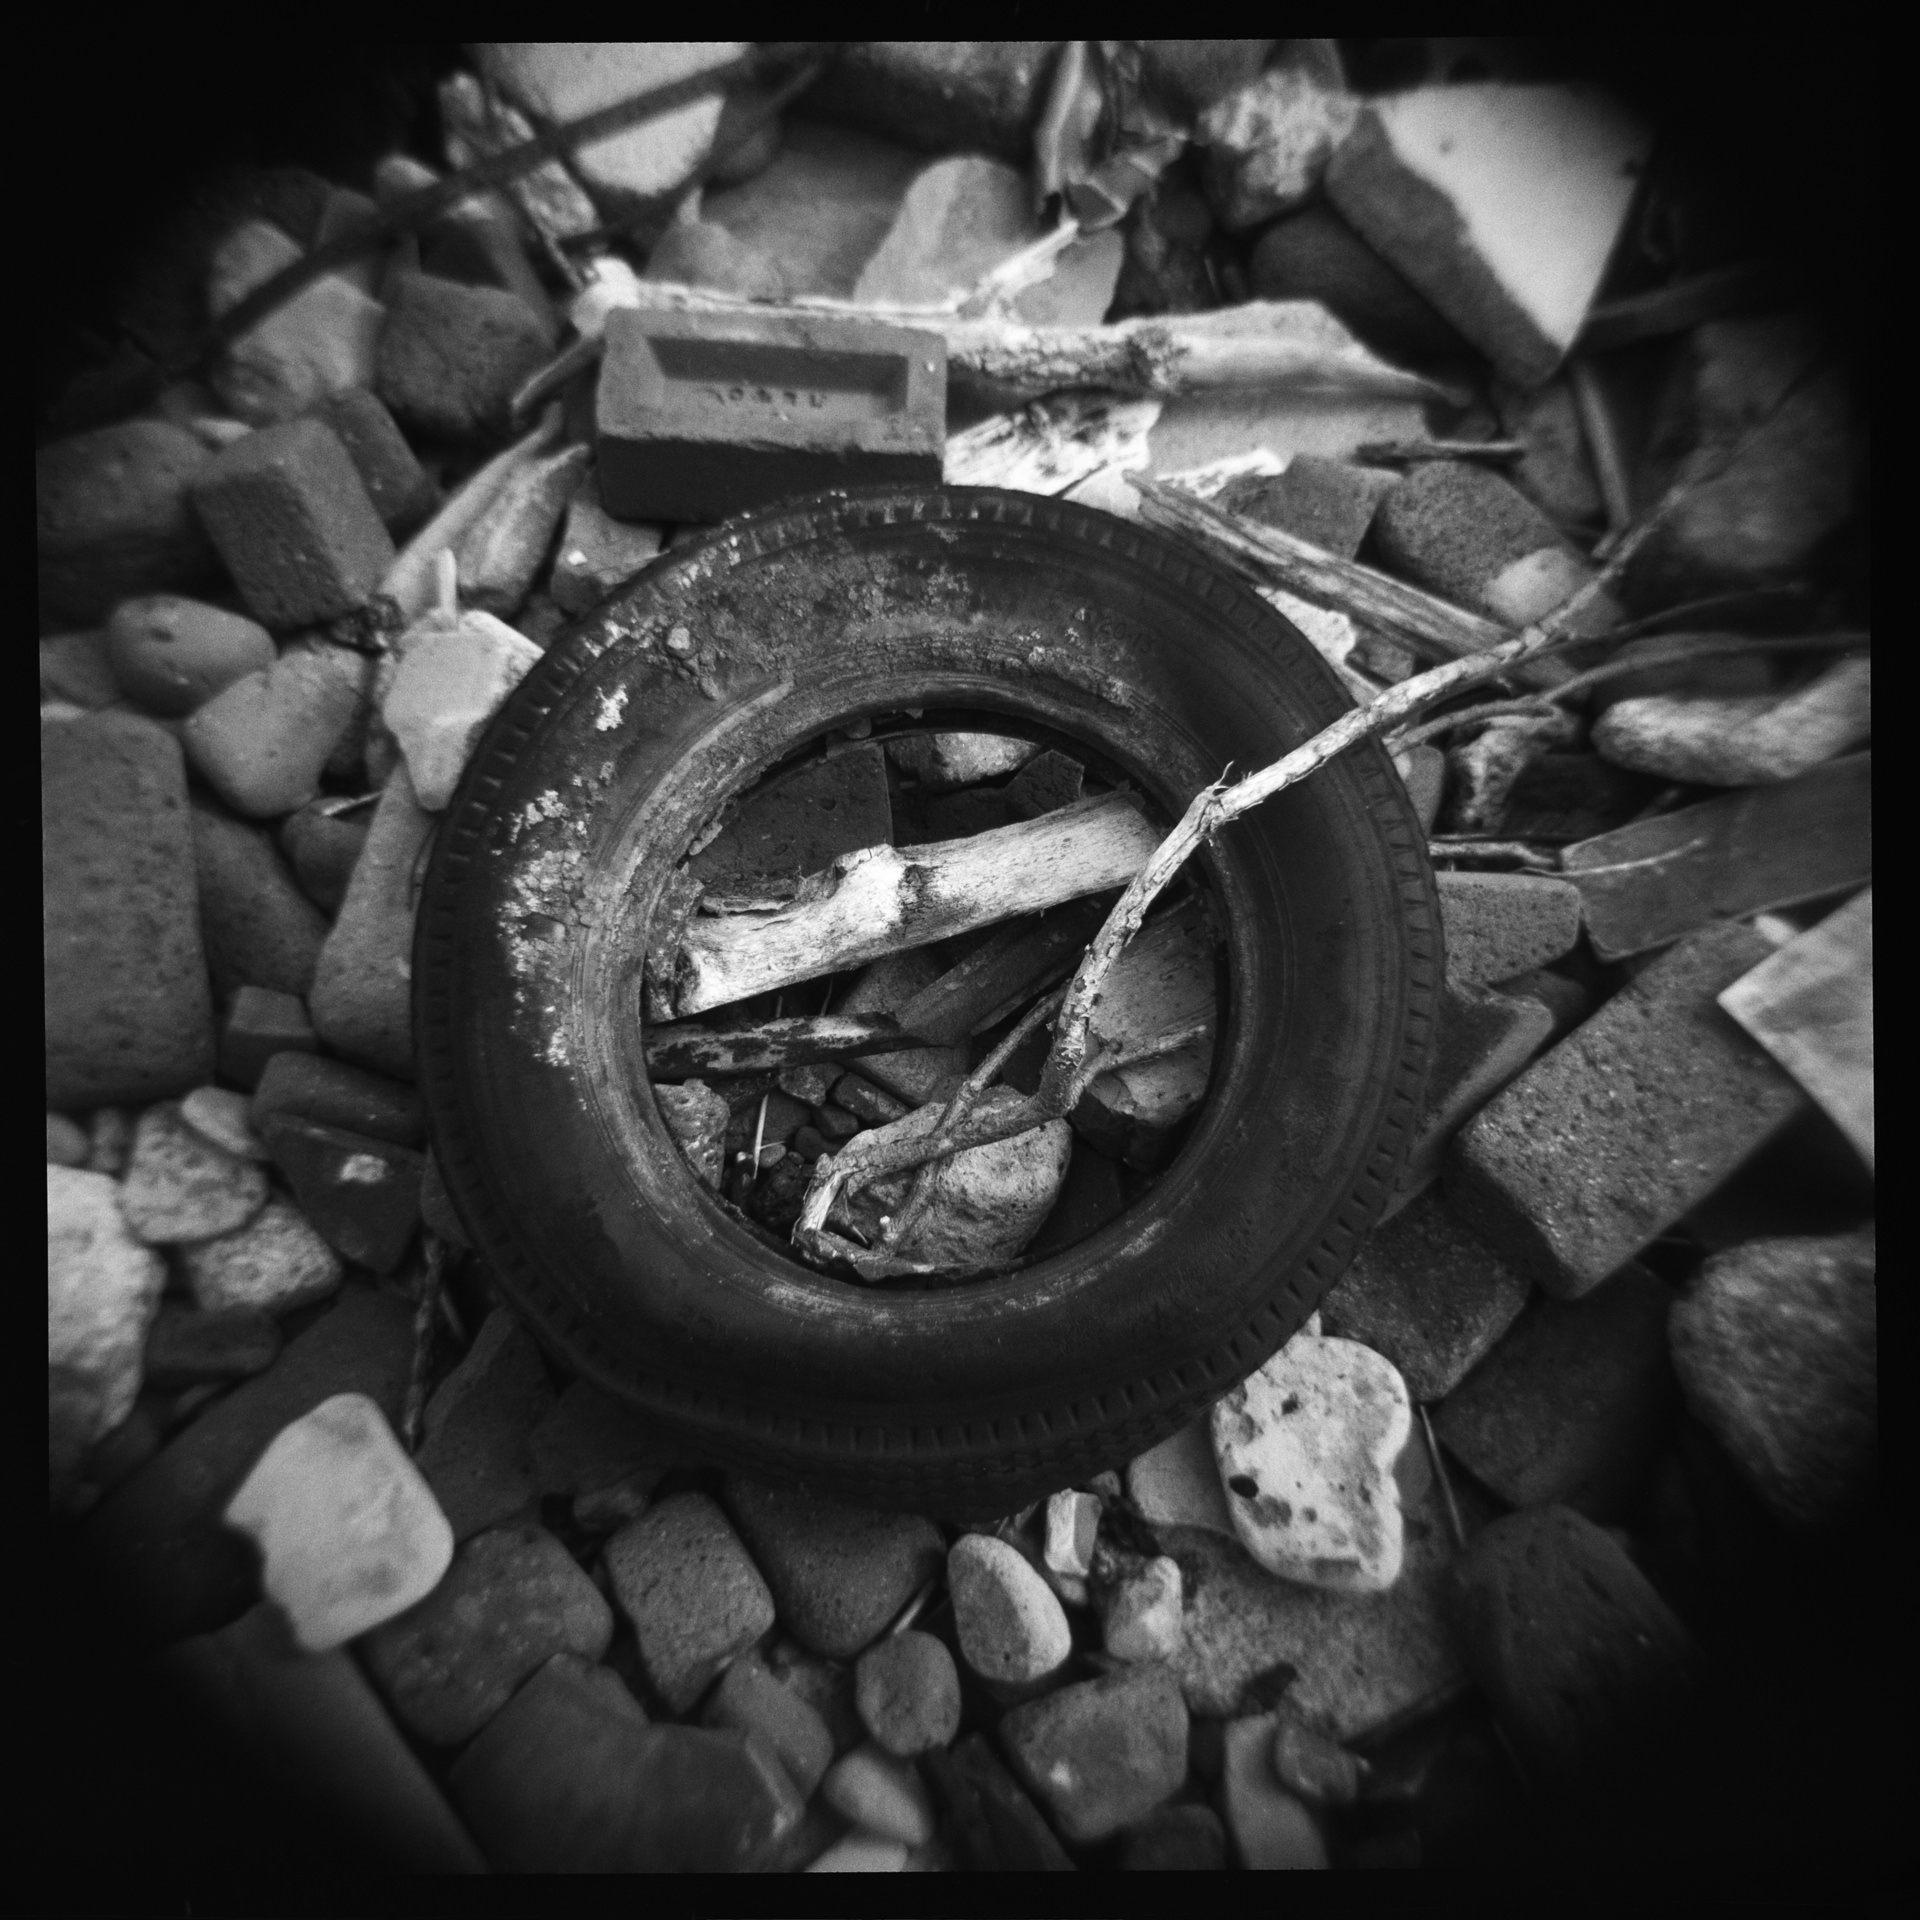 ...I photographed a number of tyres...